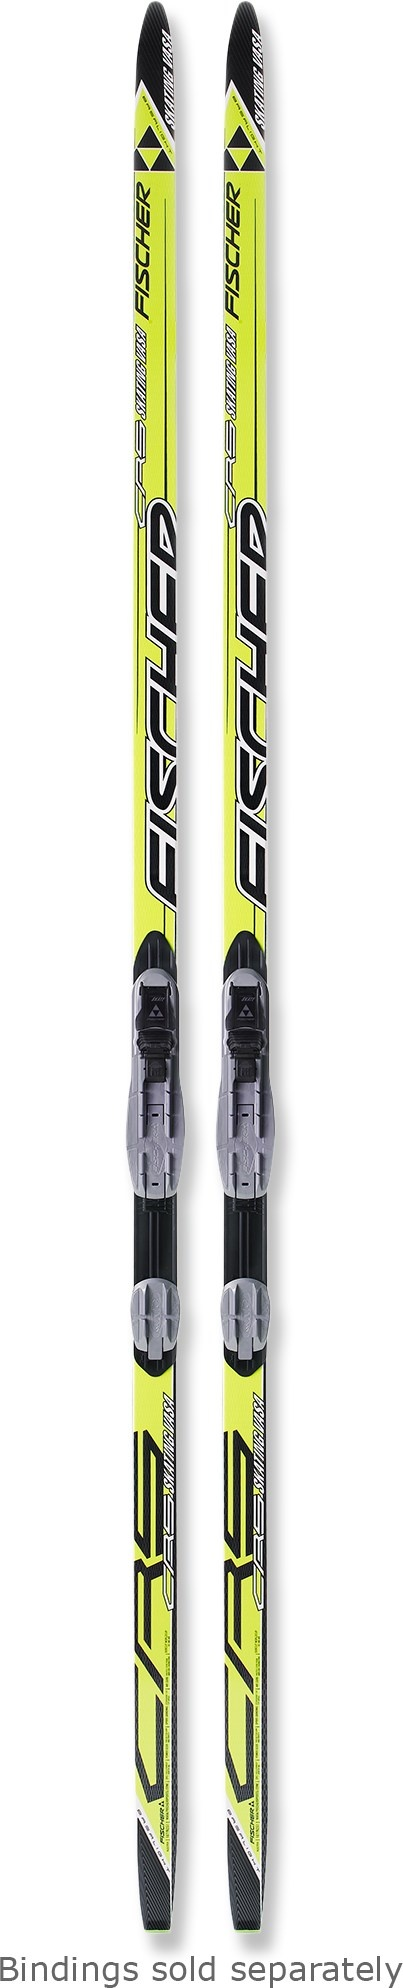 Fischer skis - cross country